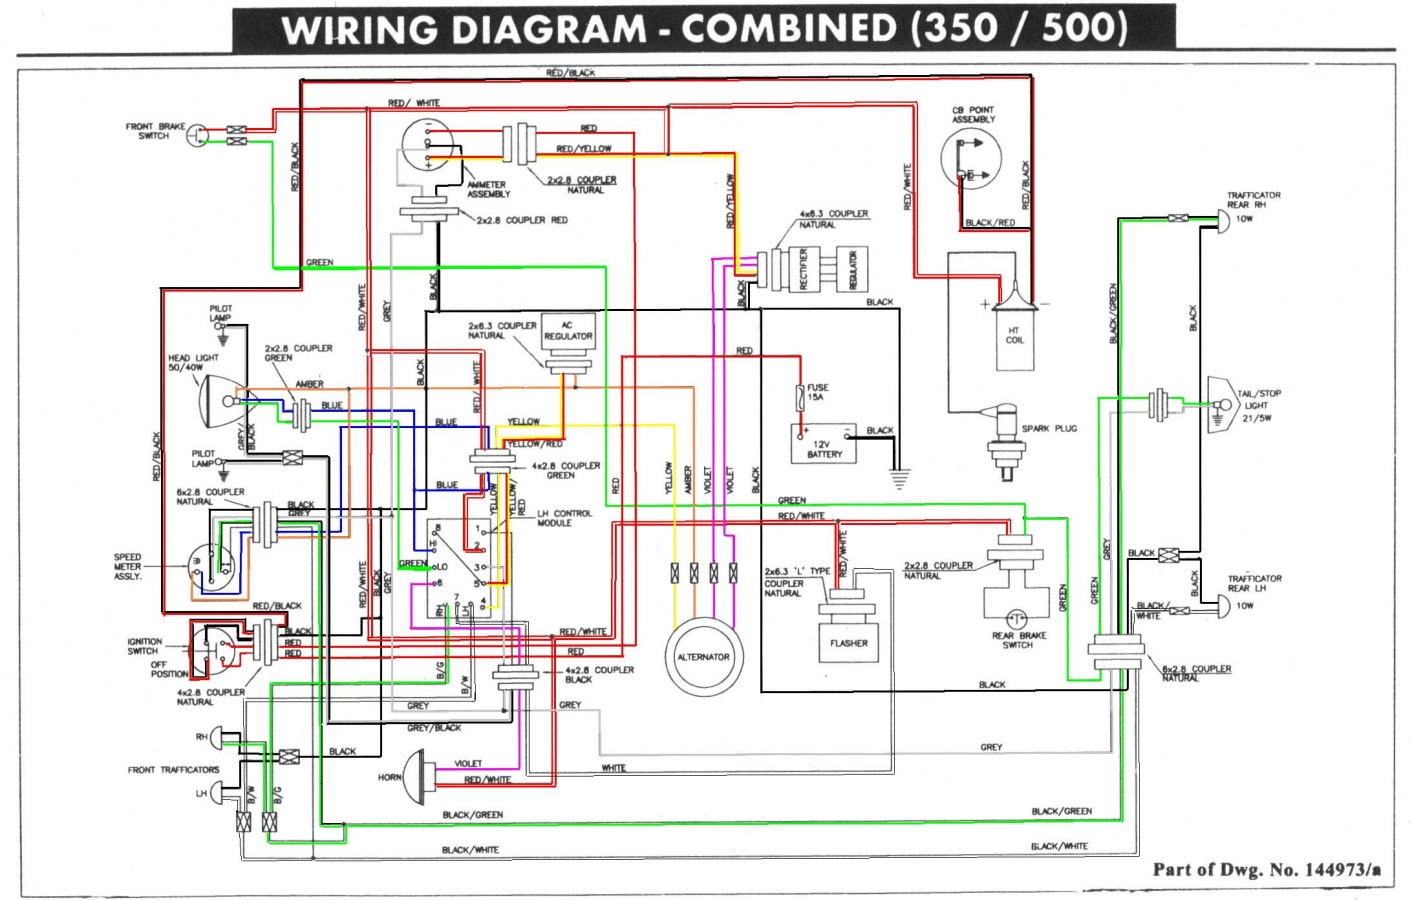 royal enfield thunderbird 350 wiring diagram royal wiring Basic Electrical Wiring Diagrams at eliteediting.co